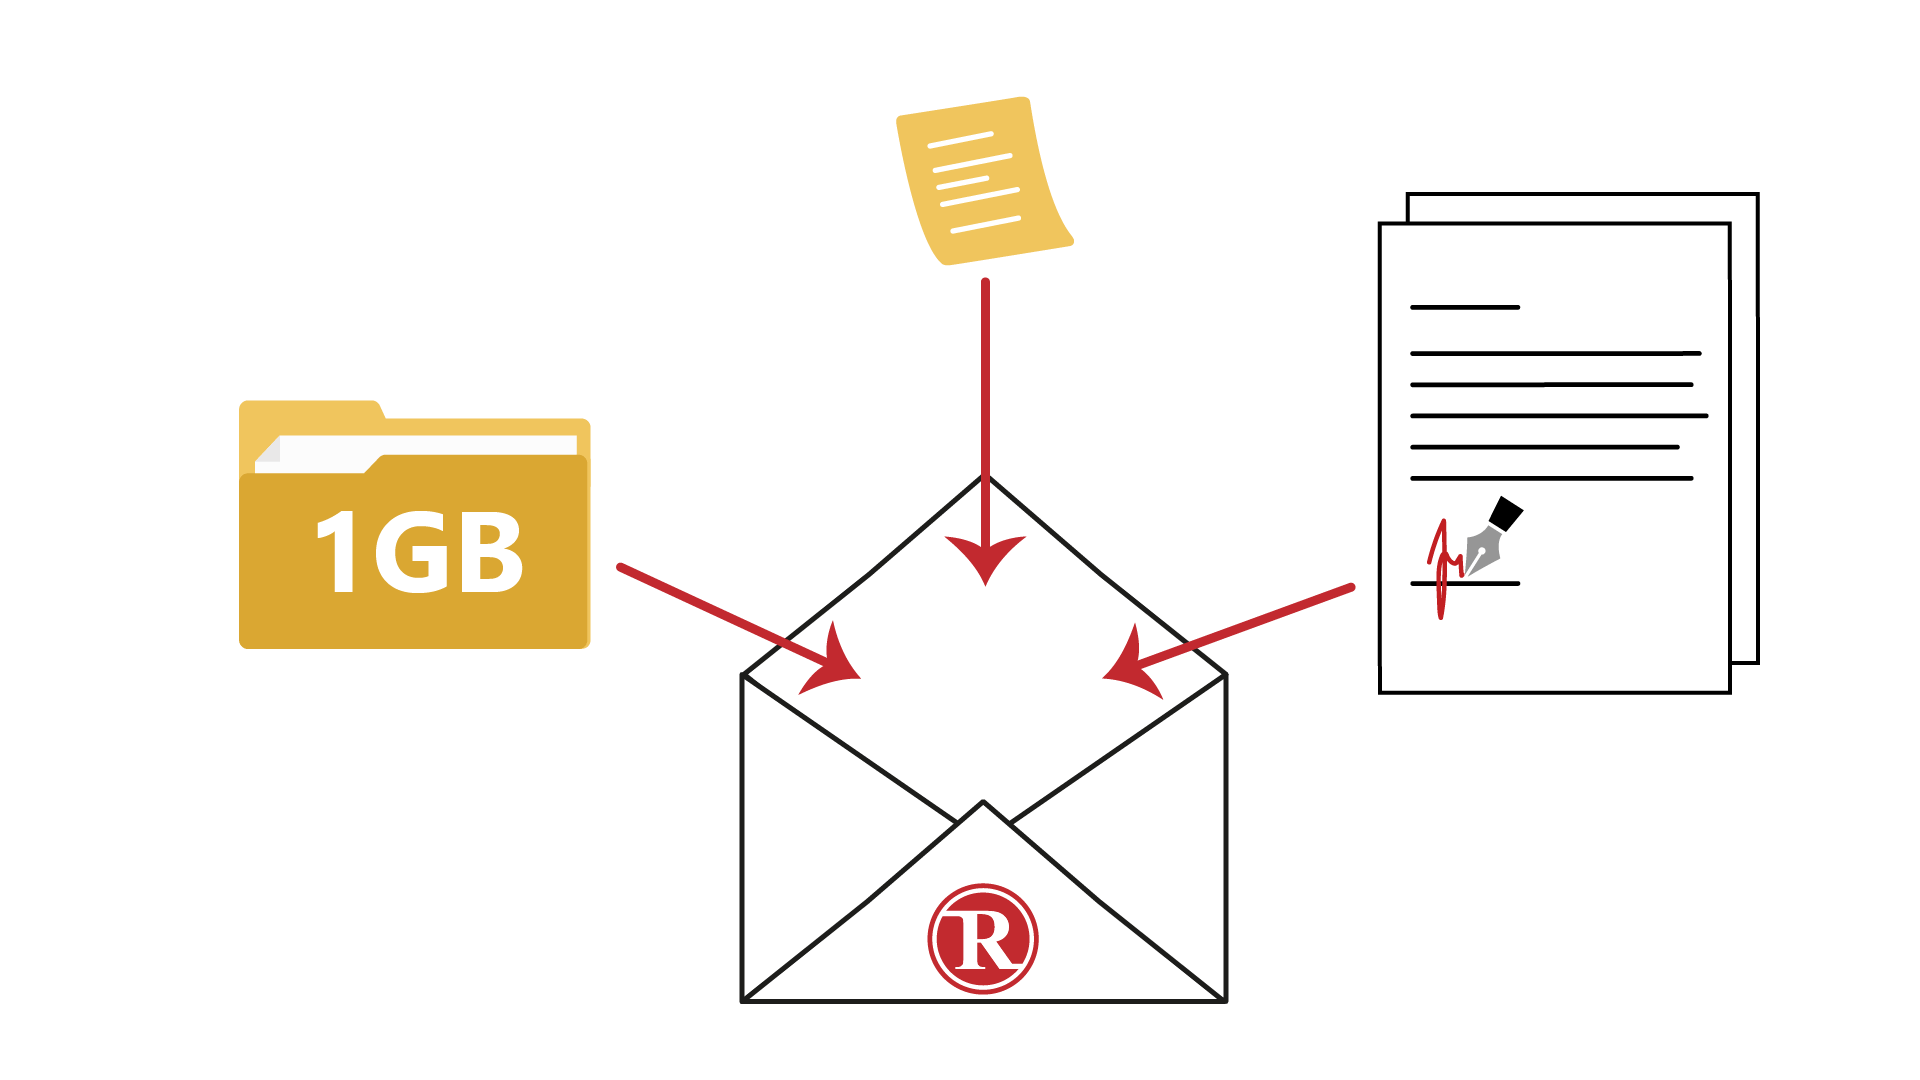 Tools LargeMail, RSign, RMail